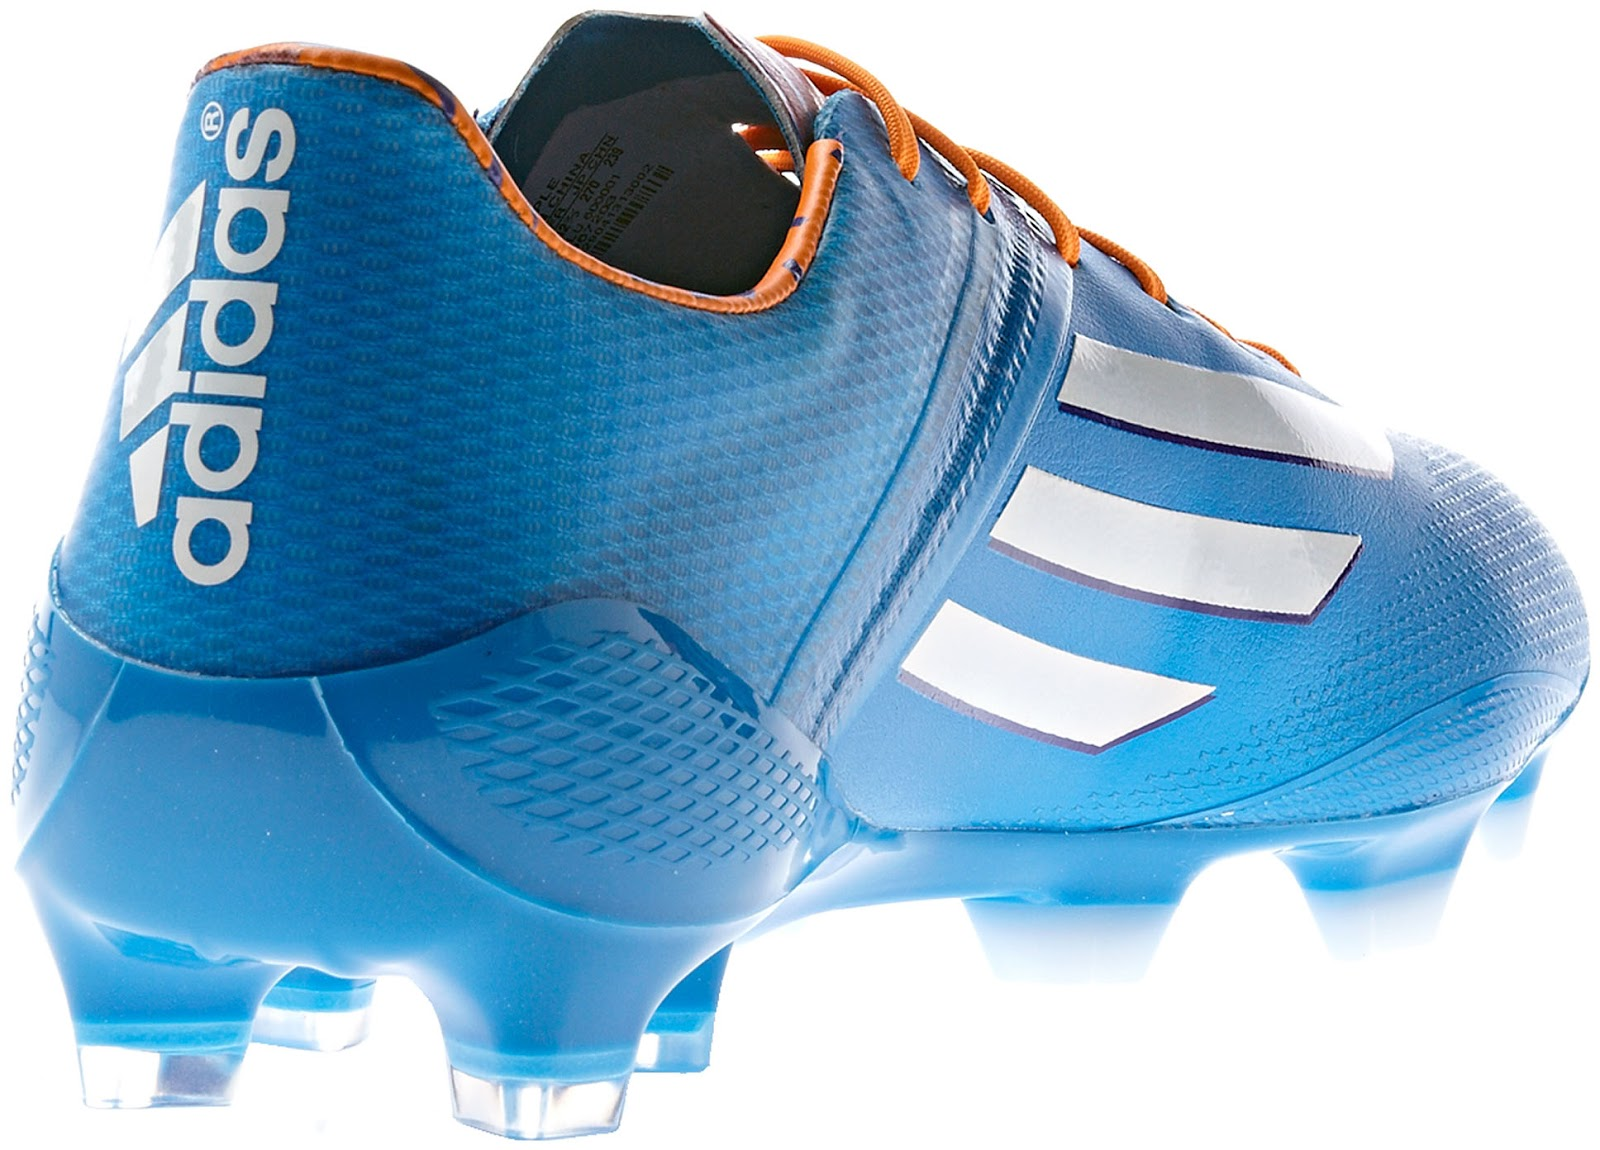 two adidas adizero f50 4 next generation boots unveiled. Black Bedroom Furniture Sets. Home Design Ideas